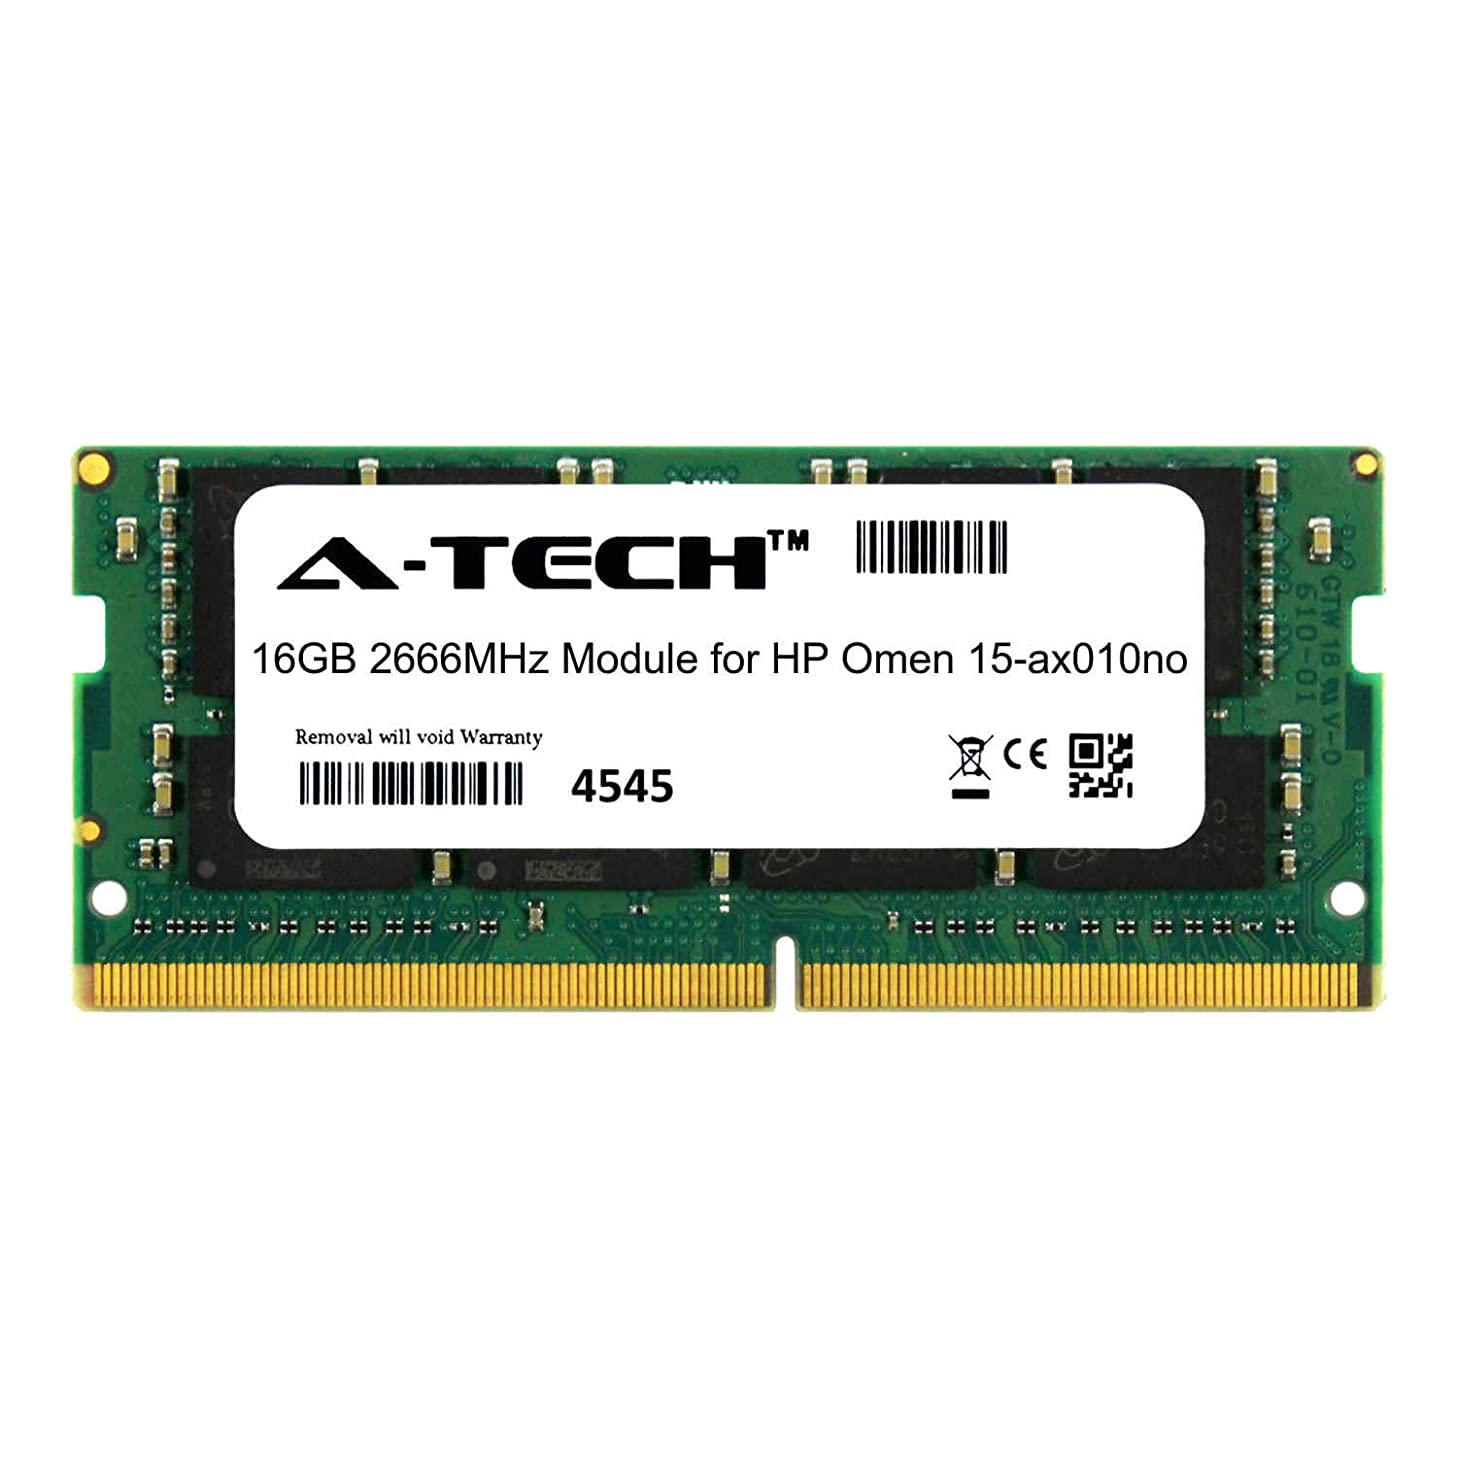 A-Tech 16GB Module for HP Omen 15-ax010no Laptop & Notebook Compatible DDR4 2666Mhz Memory Ram (ATMS279754A25832X1)